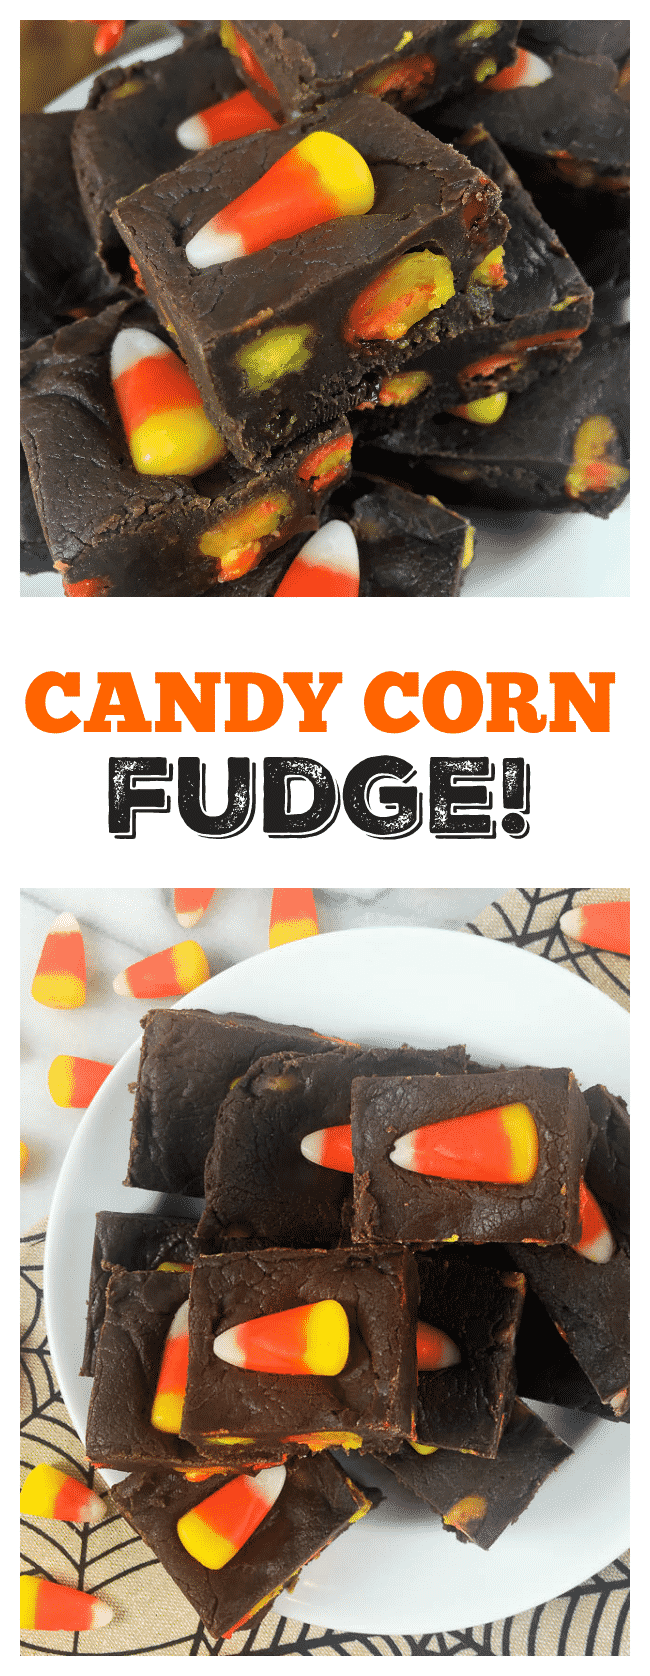 Easy Candy Corn Fudge Recipe - This easy candy corn fudge can be made in just minutes!